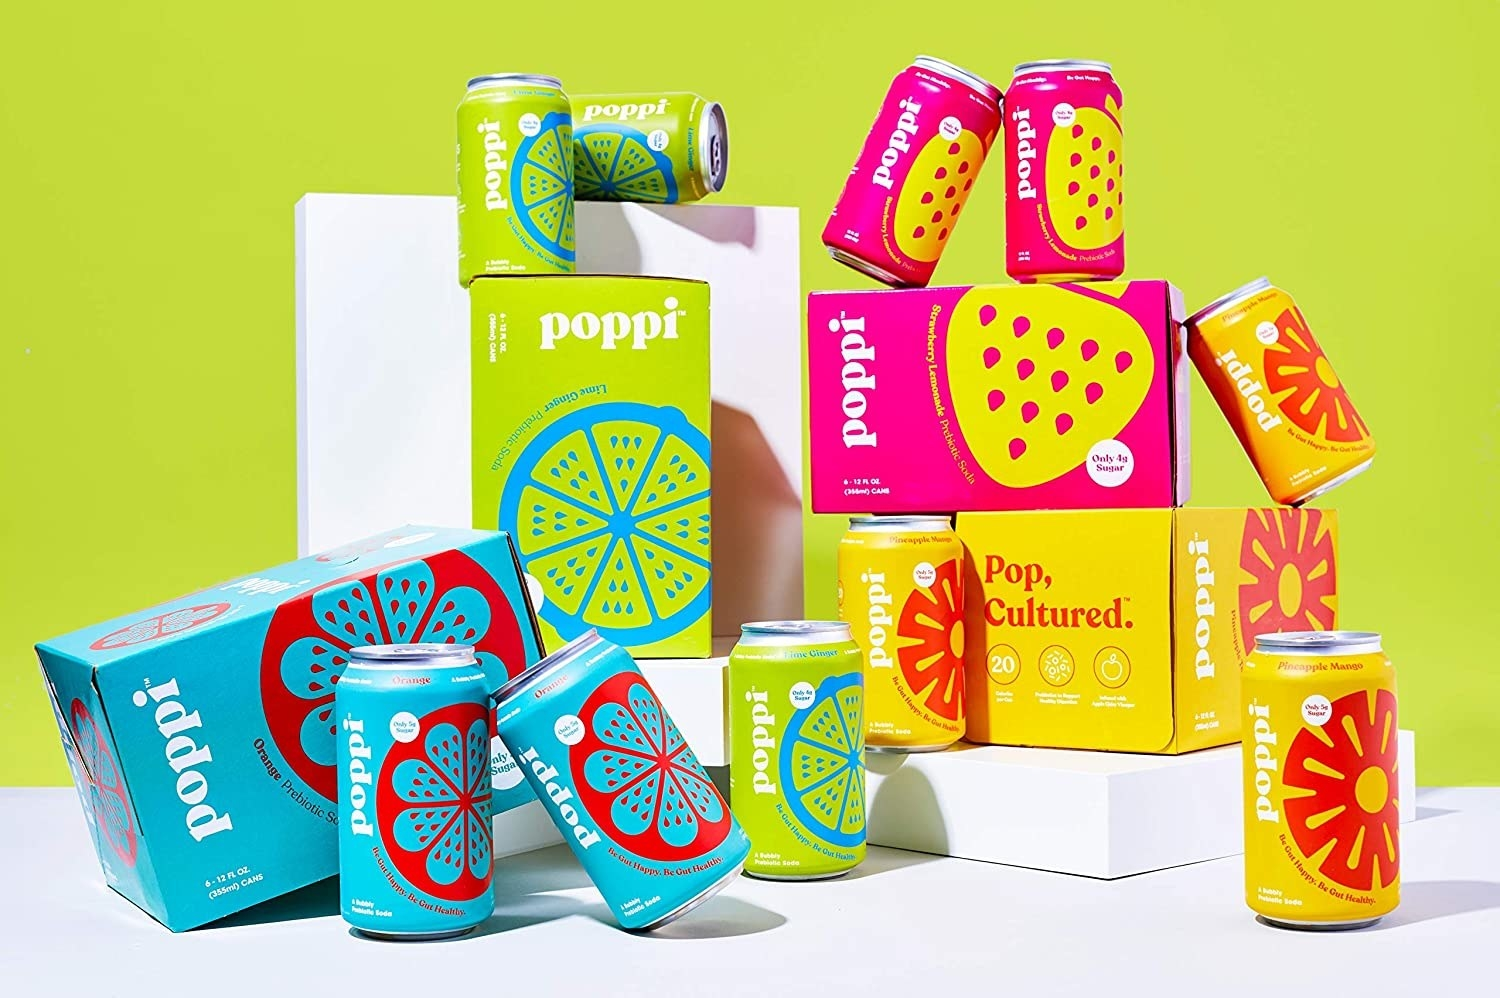 various cans of sparkling prebiotic soda in flavors like strawberry lemonade and lime ginger